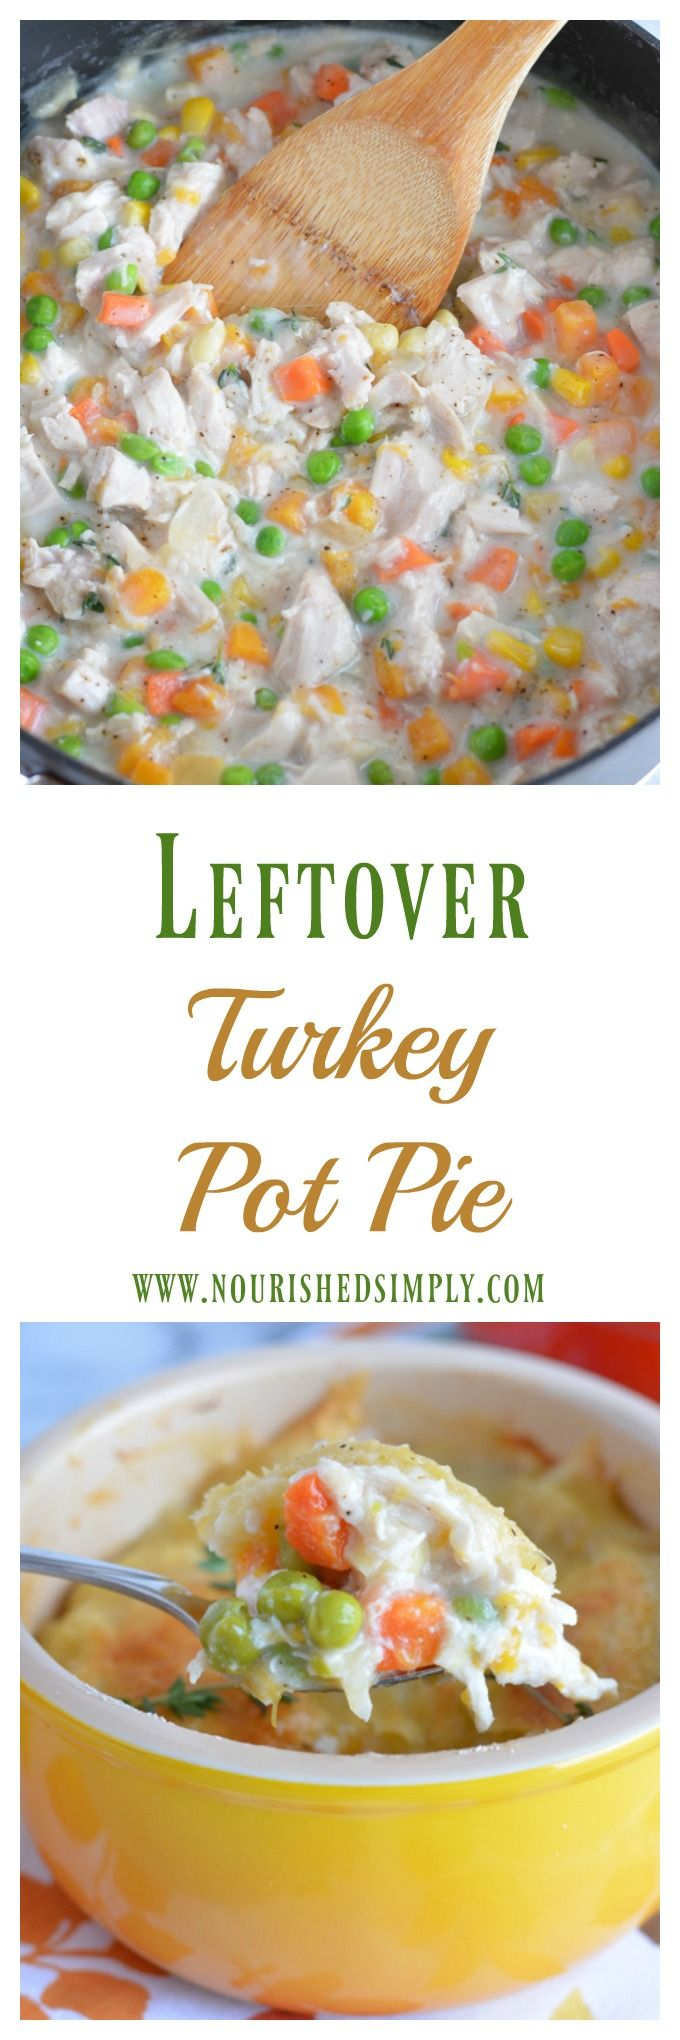 Use up leftover turkey in this quick and easy turkey pot pie recipe. It's loaded with veggies that you can grab right from your freezer. Don't let Thanksgiving leftovers go to waste! #thanksgiving via @nourishedsimply